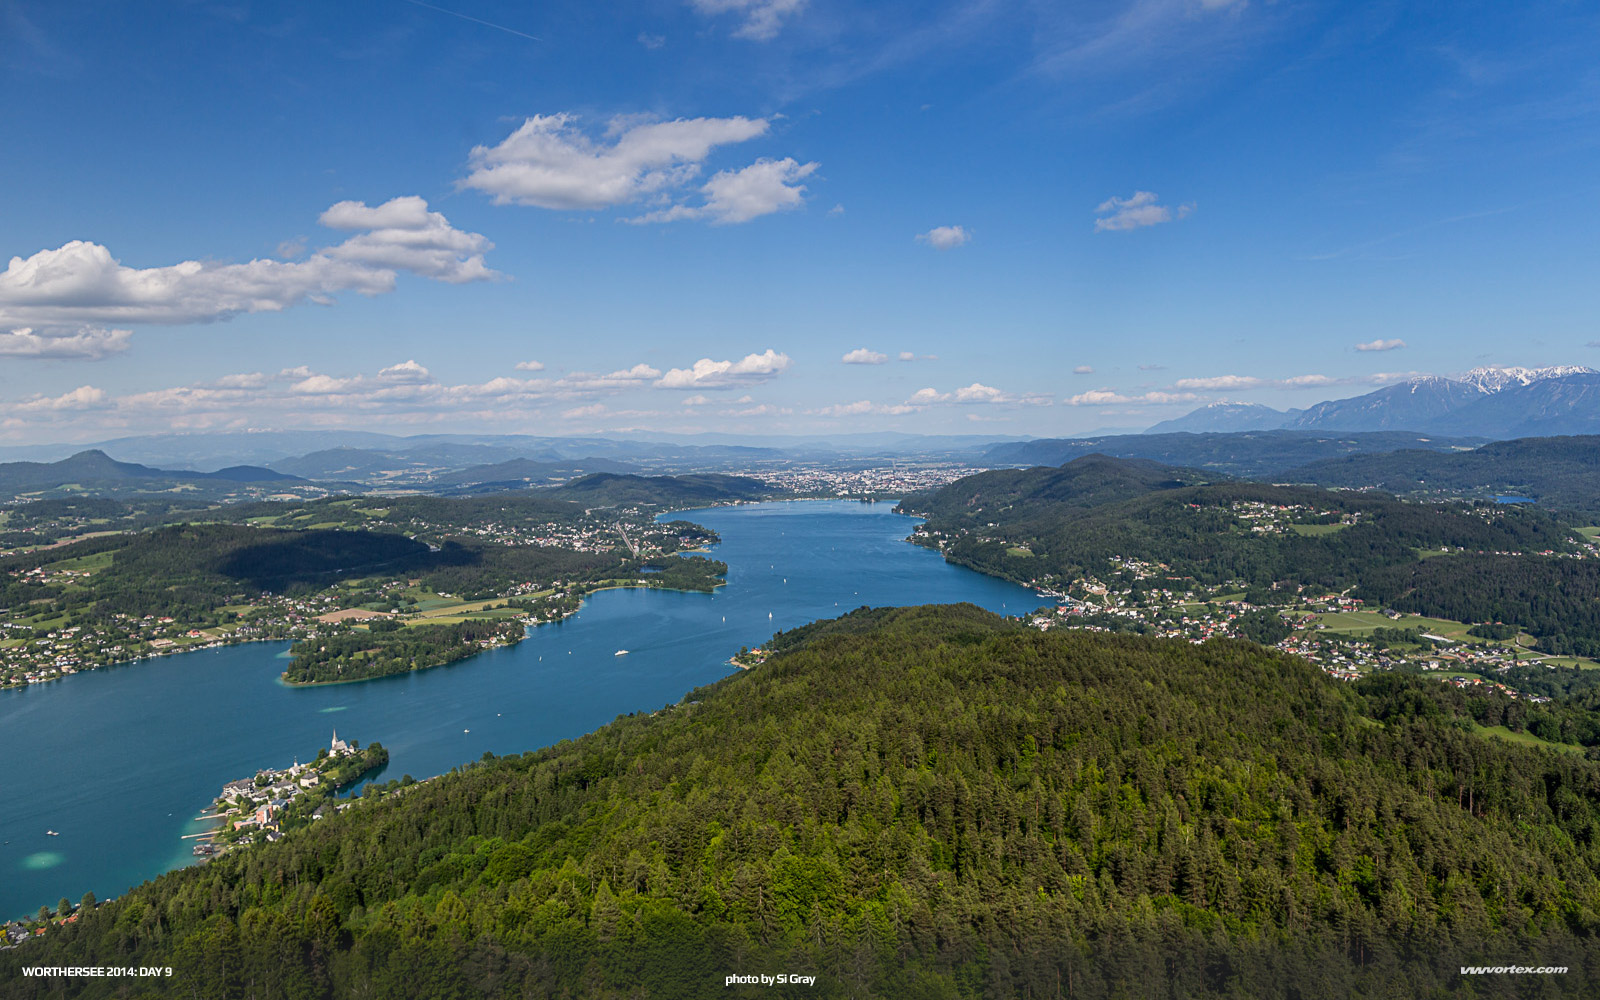 2014-Worthersee-Day-9-Si-Gray-418